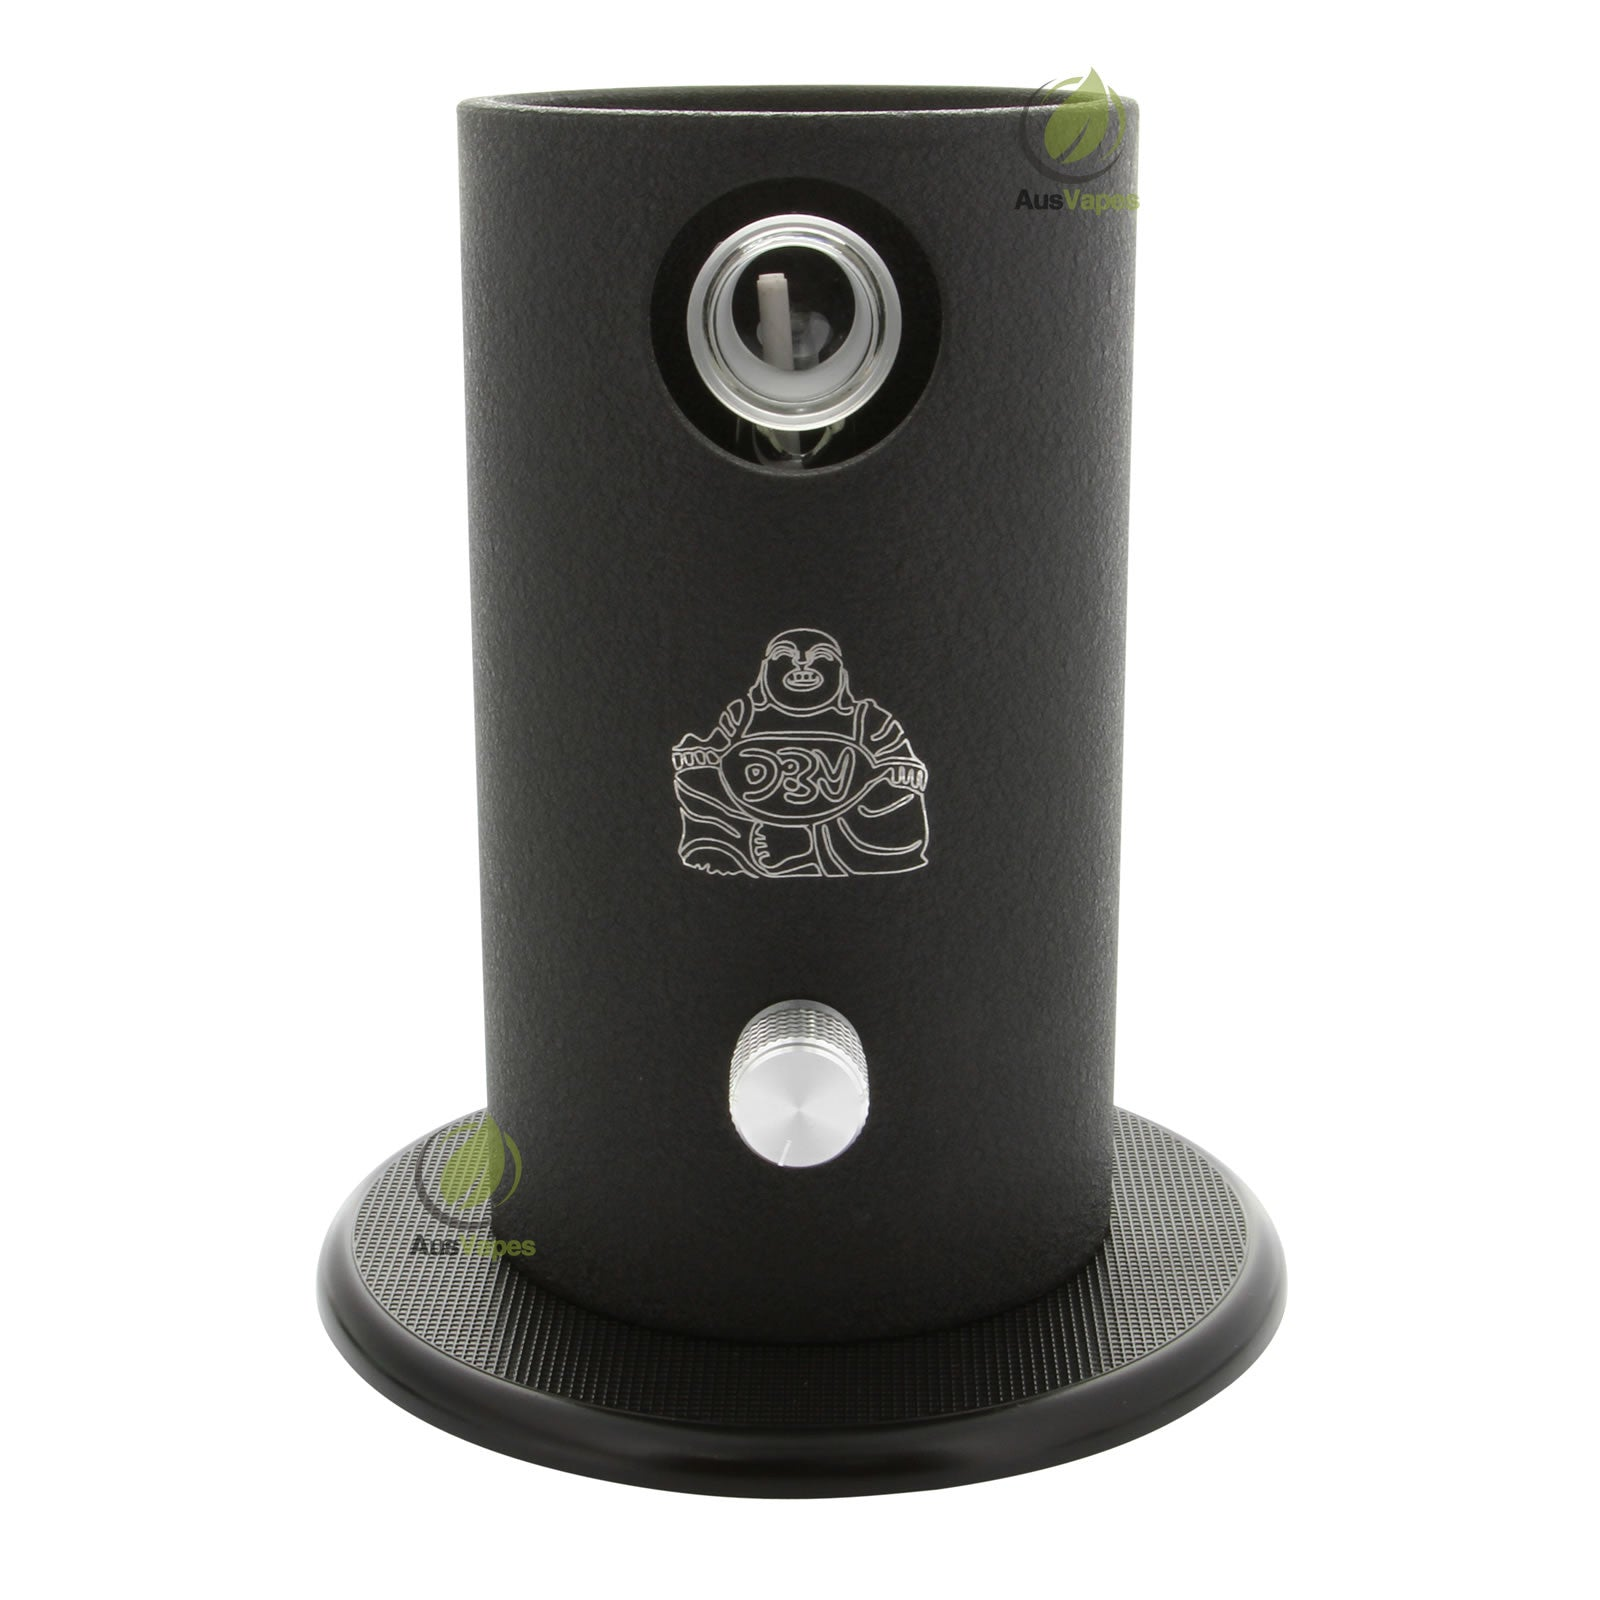 DISCONTINUED Black Da Buddha Vaporizer